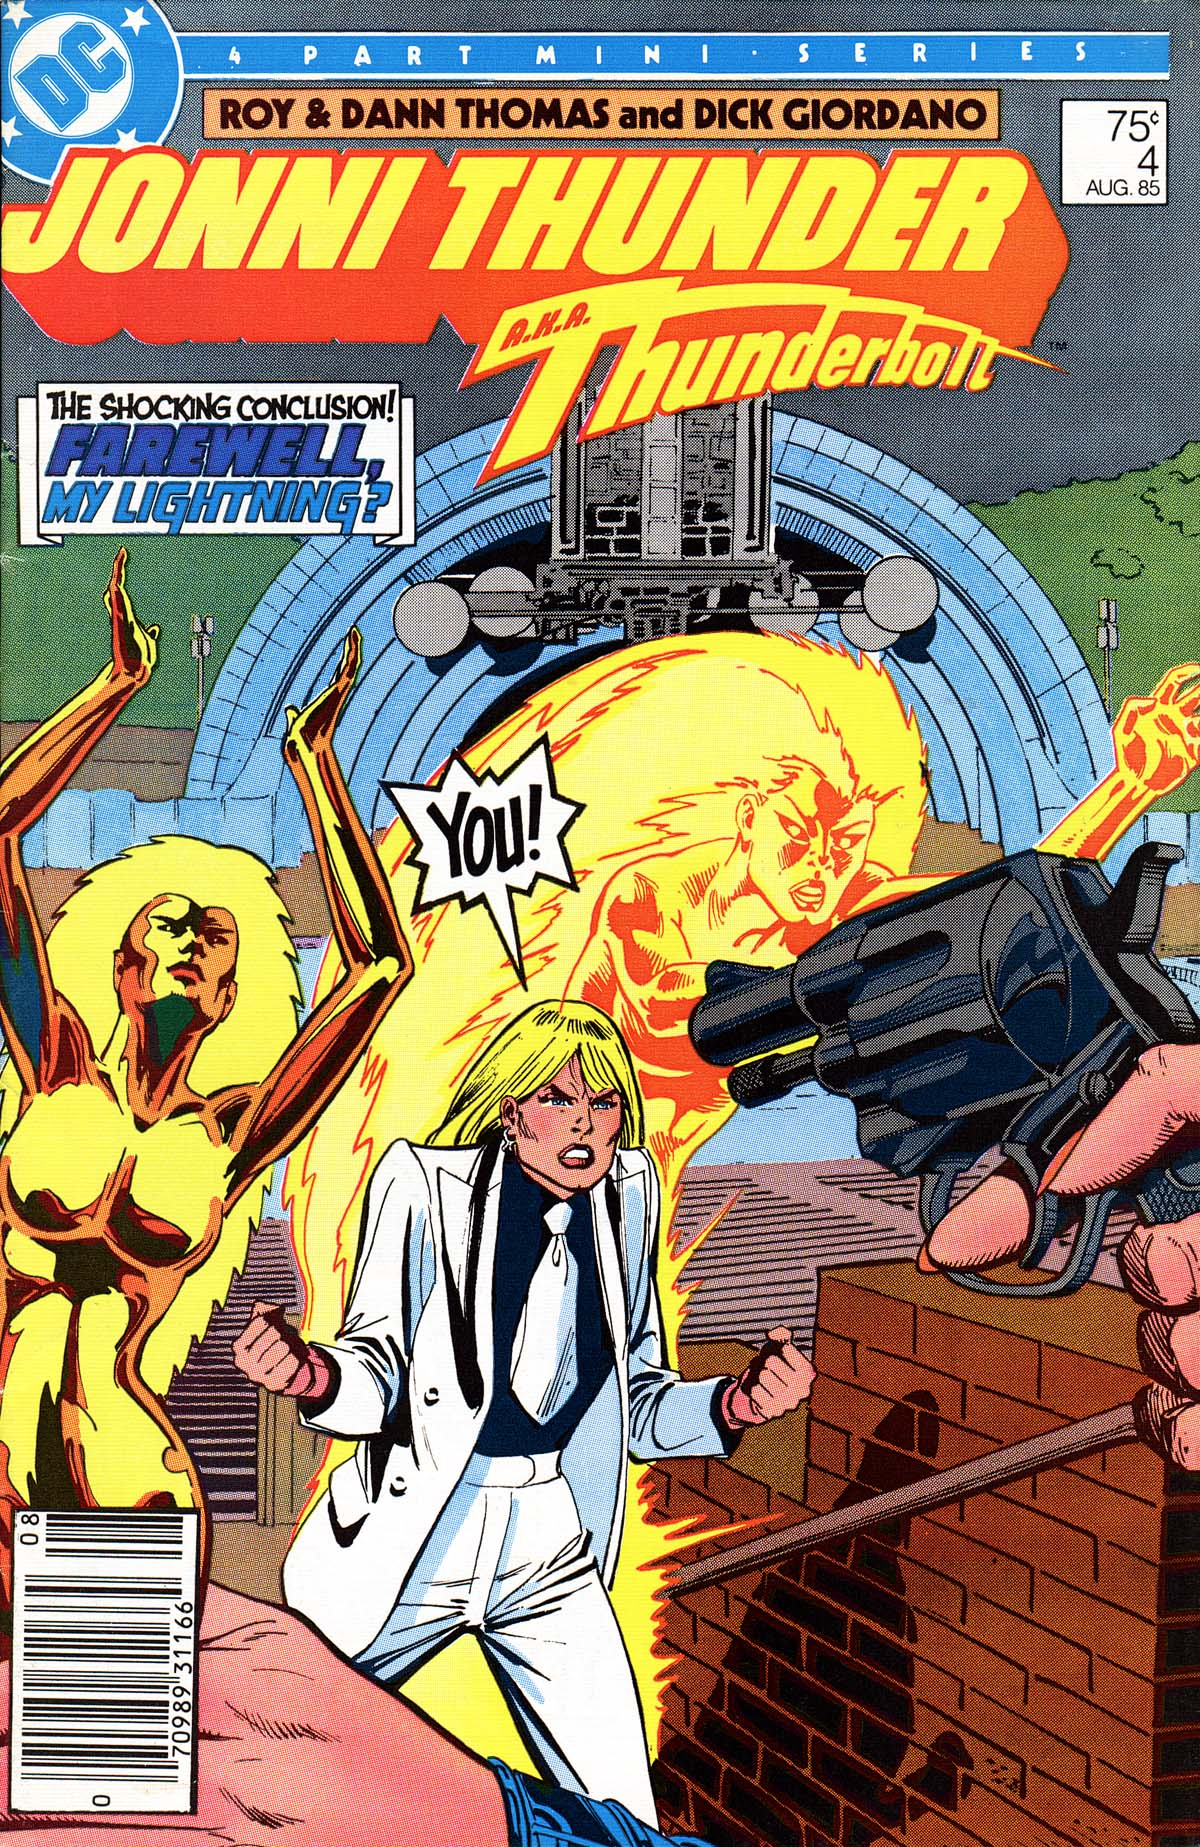 Read online Jonni Thunder comic -  Issue #4 - 1